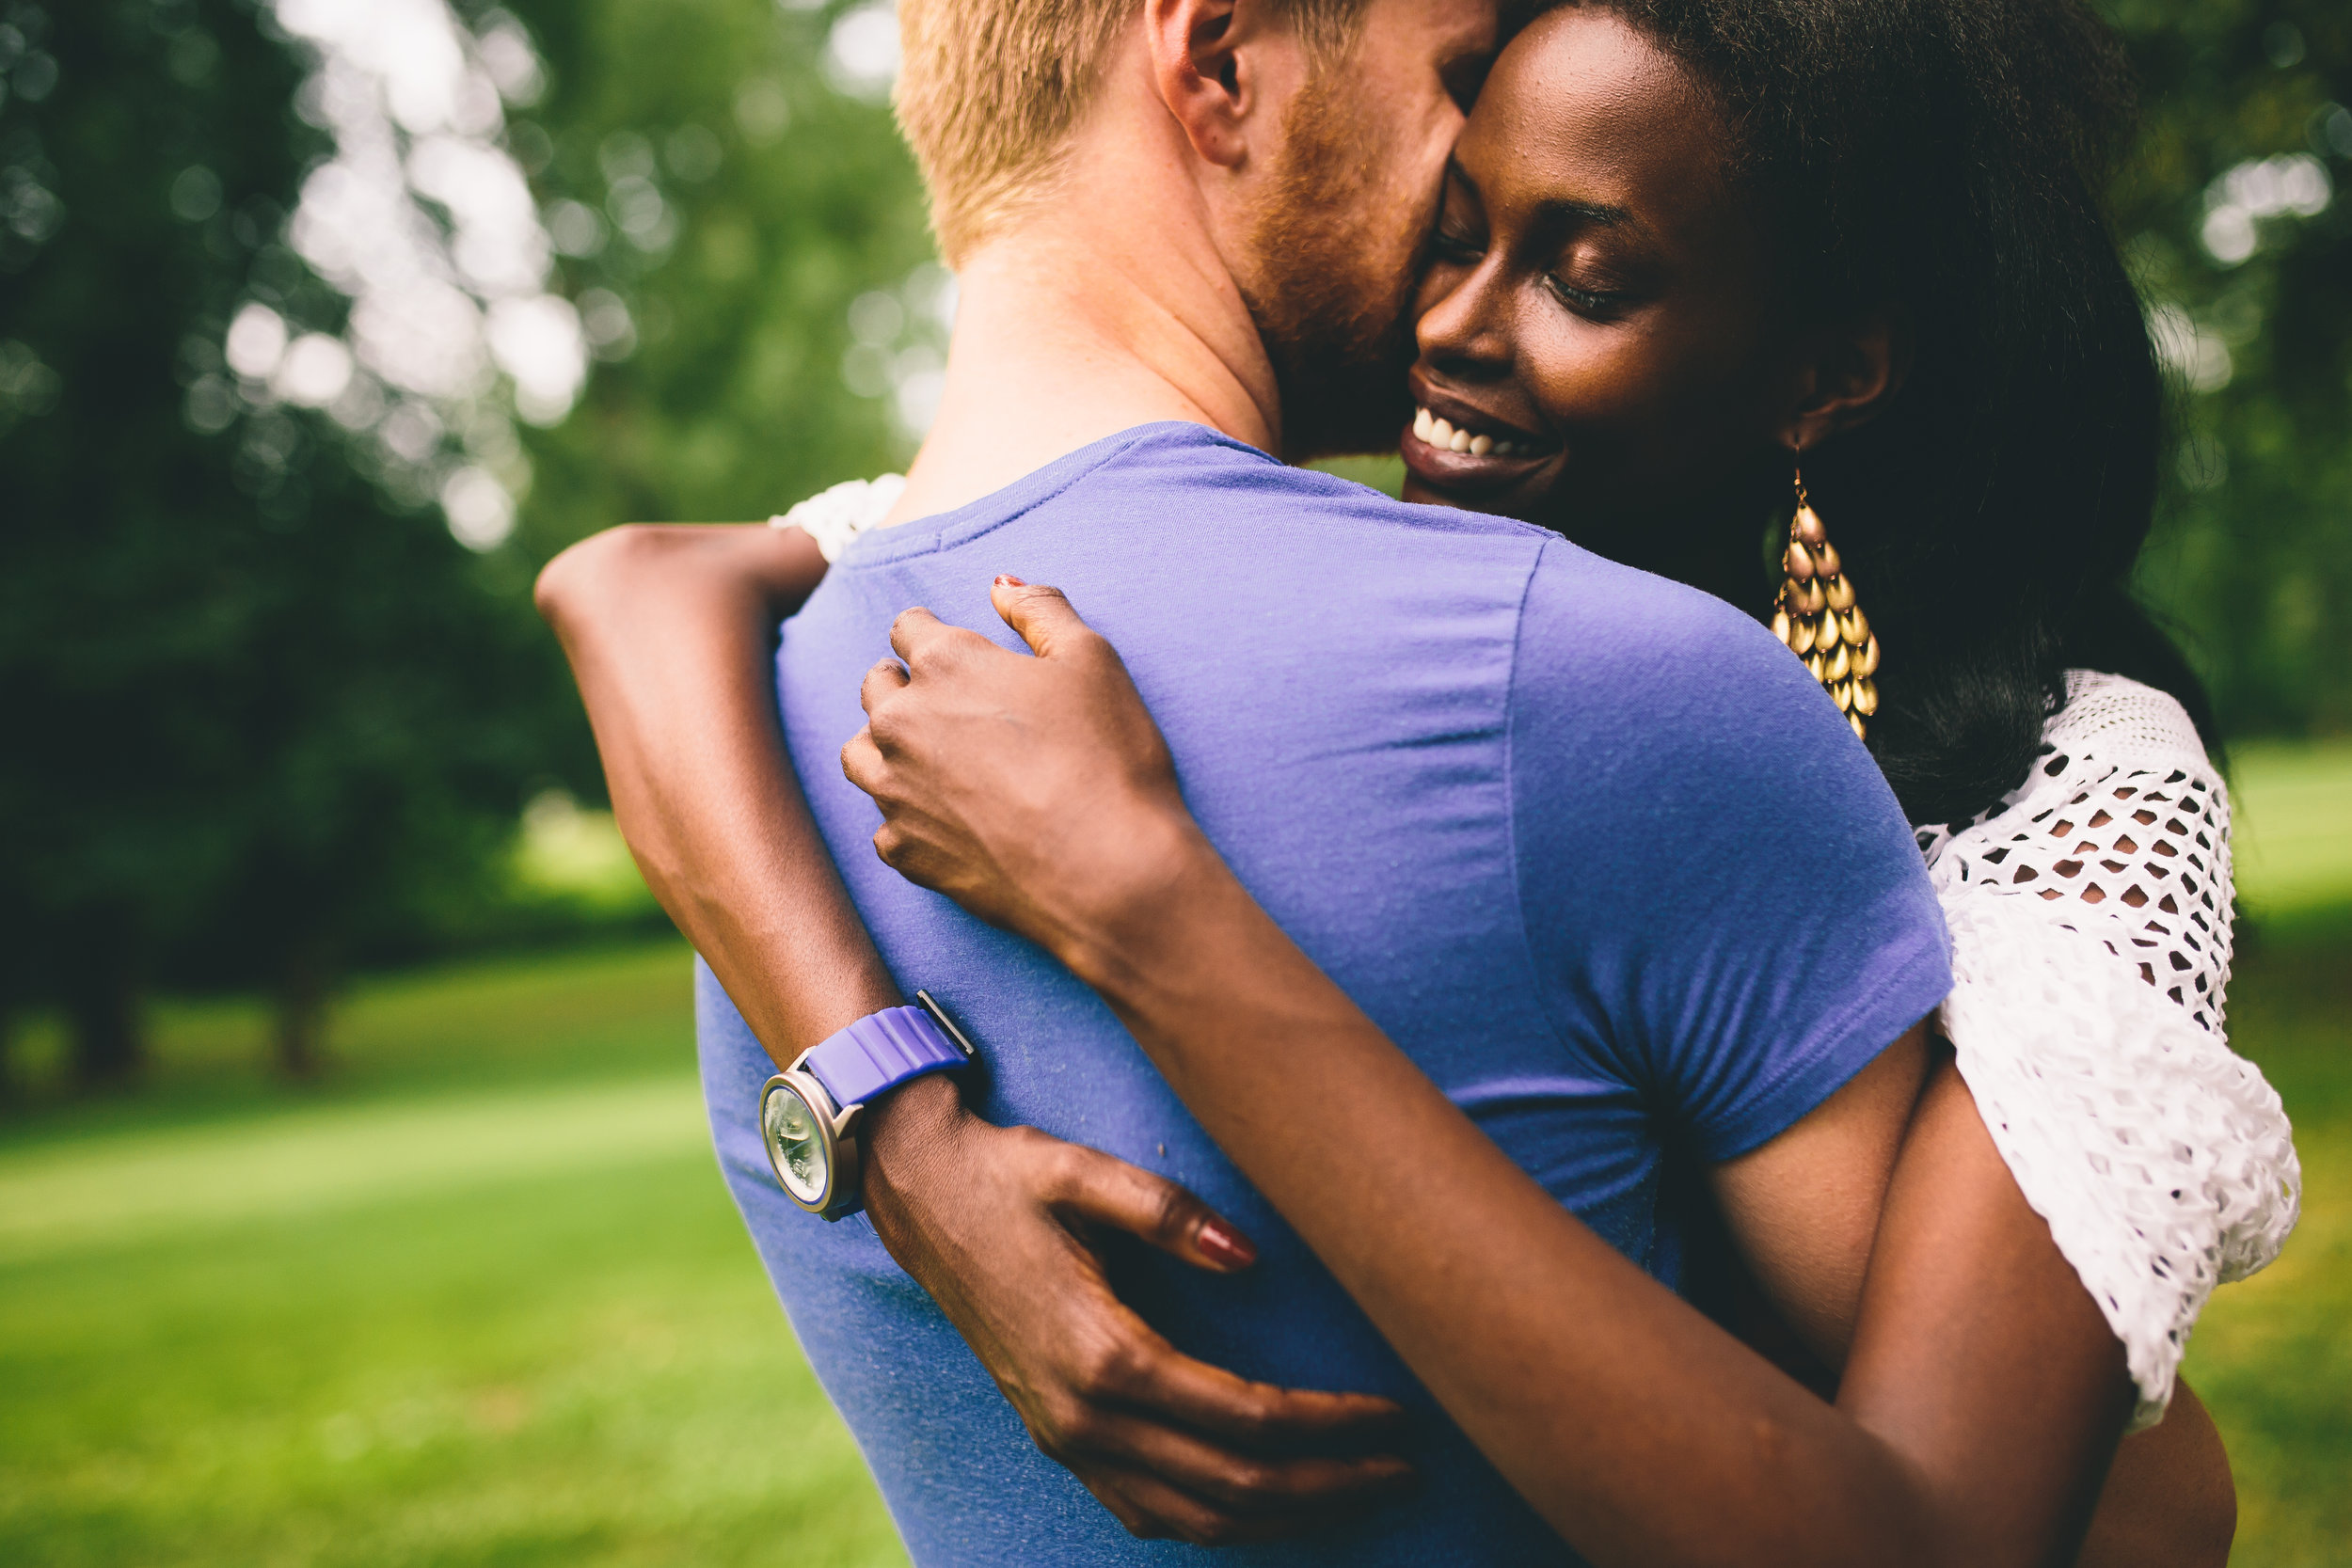 attractive interracial couple hugging in the park.jpg